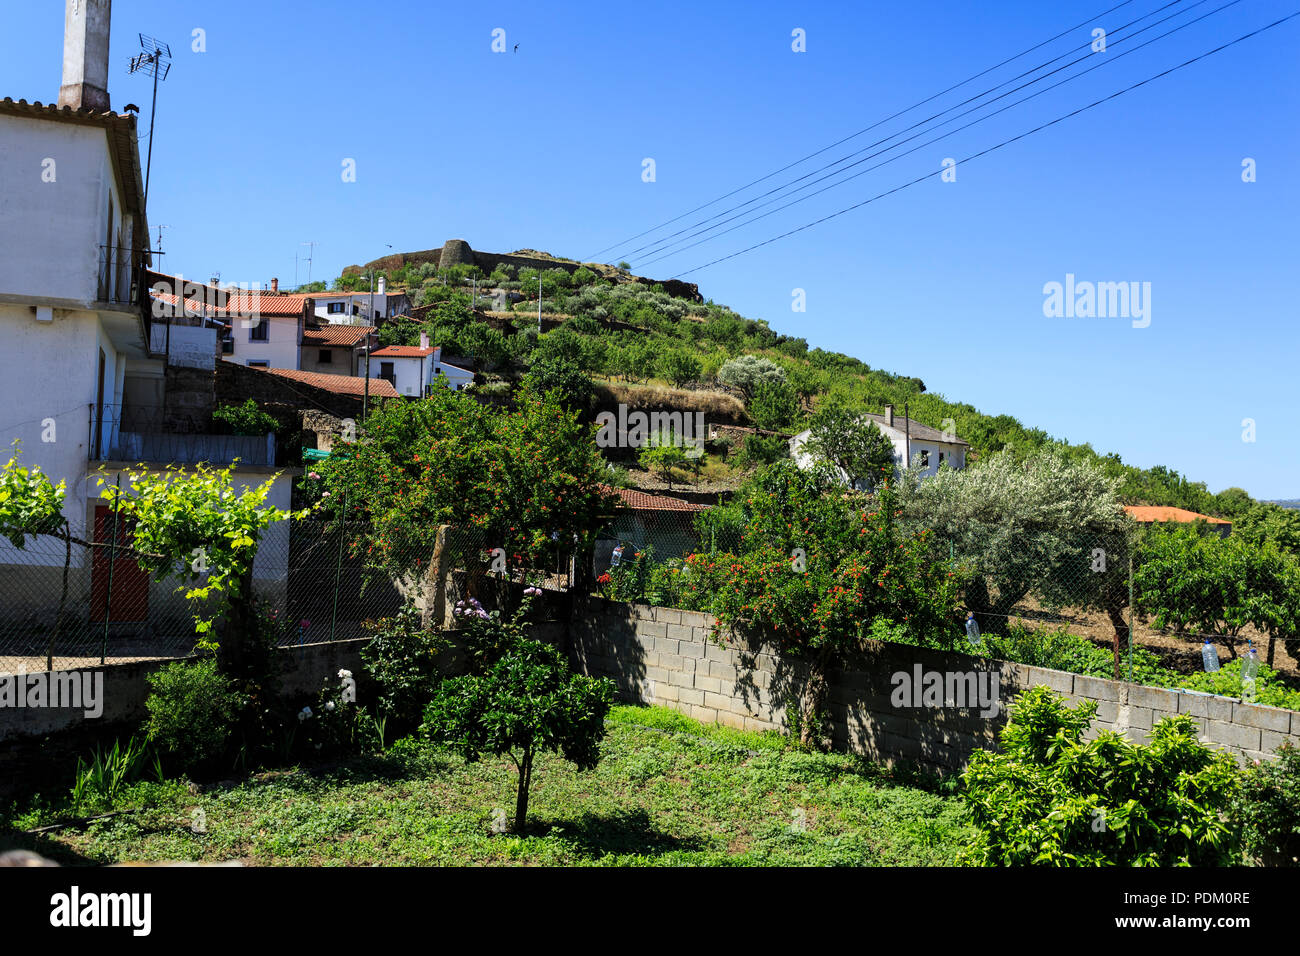 View of the medieval fortress walls of irregular polygonal form circling the hilltop and overlooking the settlement of Castelo Melhor, Portugal Stock Photo